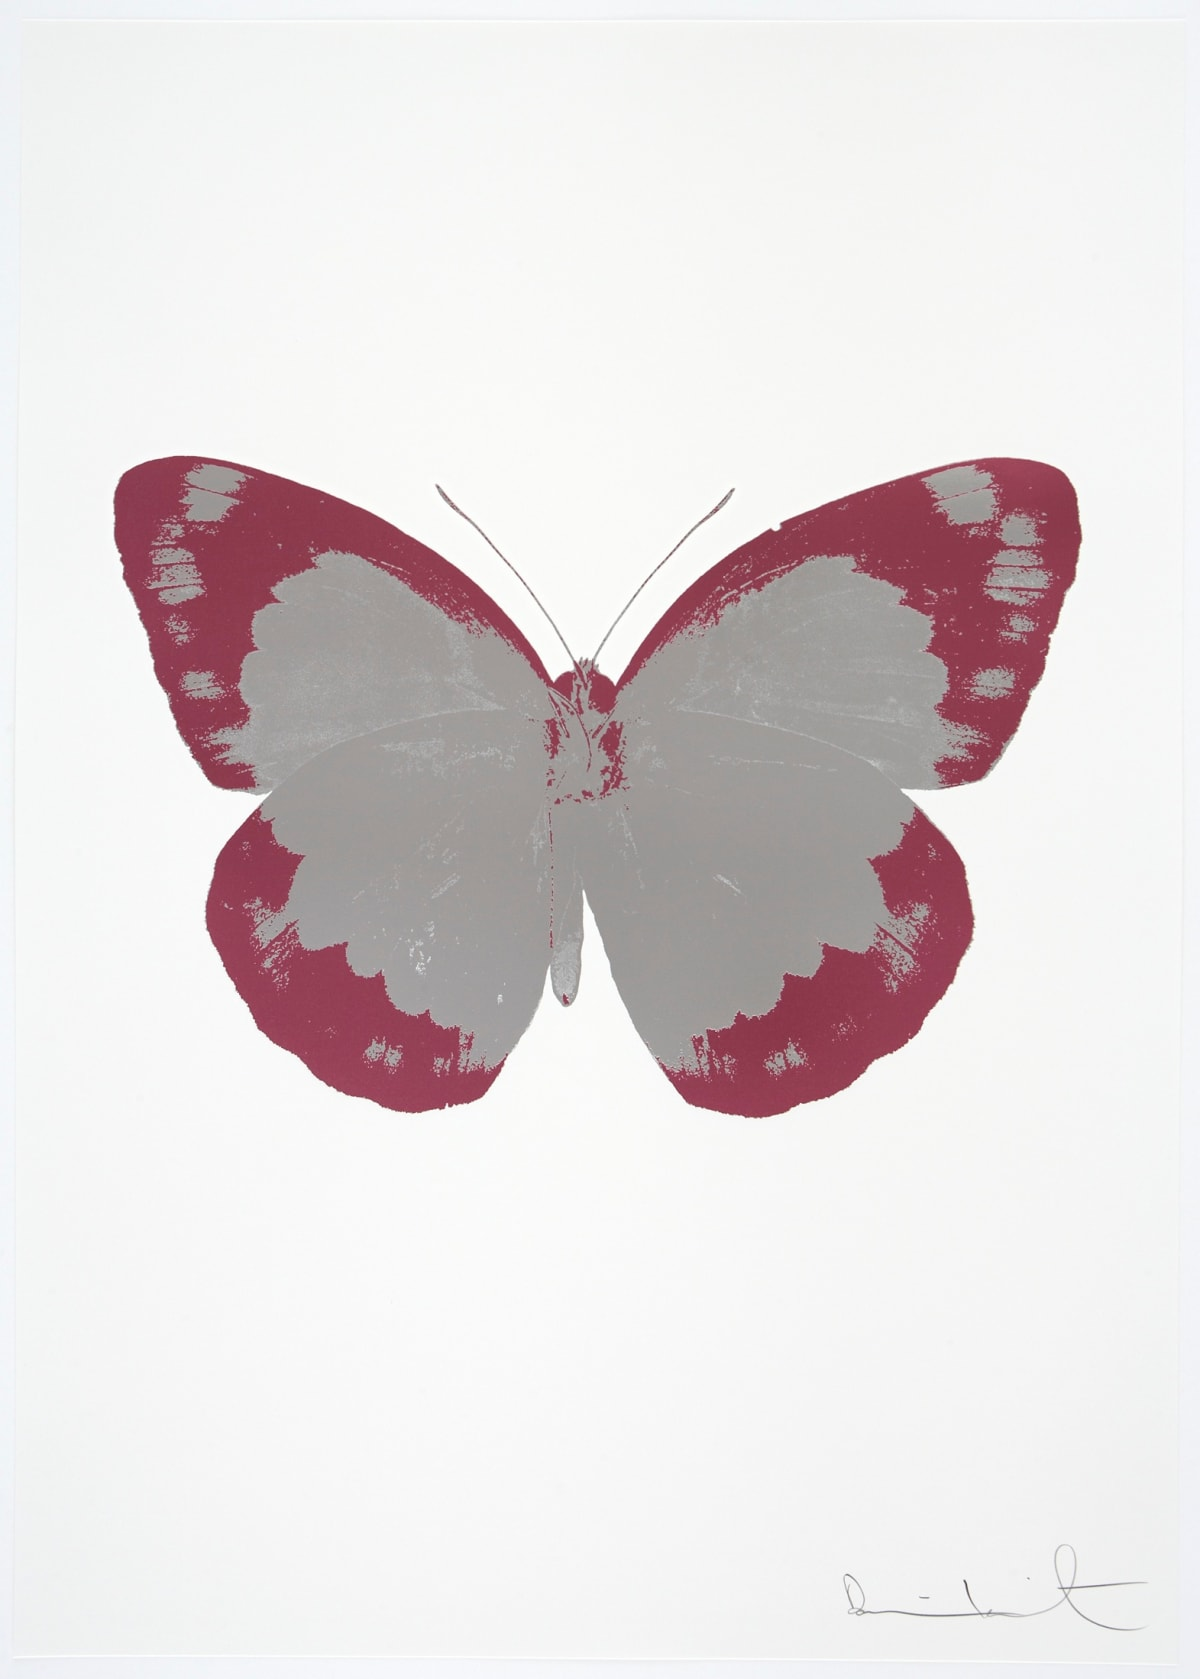 Damien Hirst The Souls II - Silver Gloss/Loganberry Pink/Blind Impression, 2010 2 colour foil block on 300gsm Arches 88 archival paper. Signed and numbered. Published by Paul Stolper and Other Criteria 72 x 51cm OC7843 / 658-26 Edition of 15